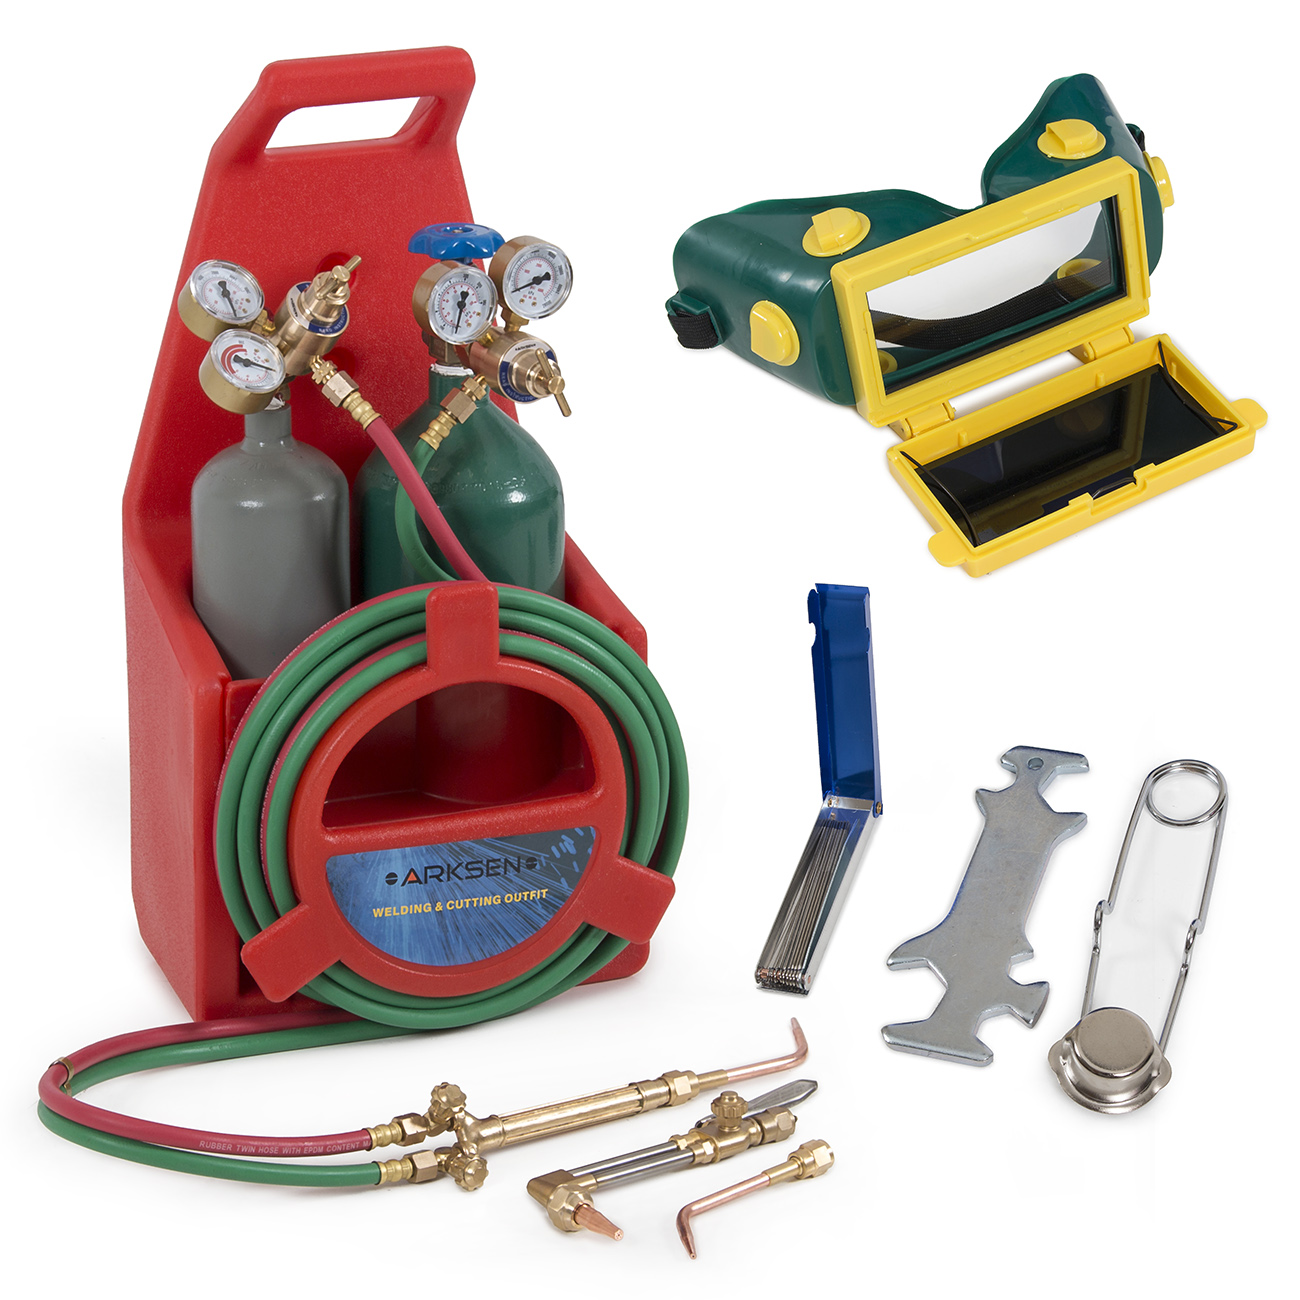 Arksen Portable Torch Kit, Oxygen & Acetylene Welding, Professional, Tote Storage, Red